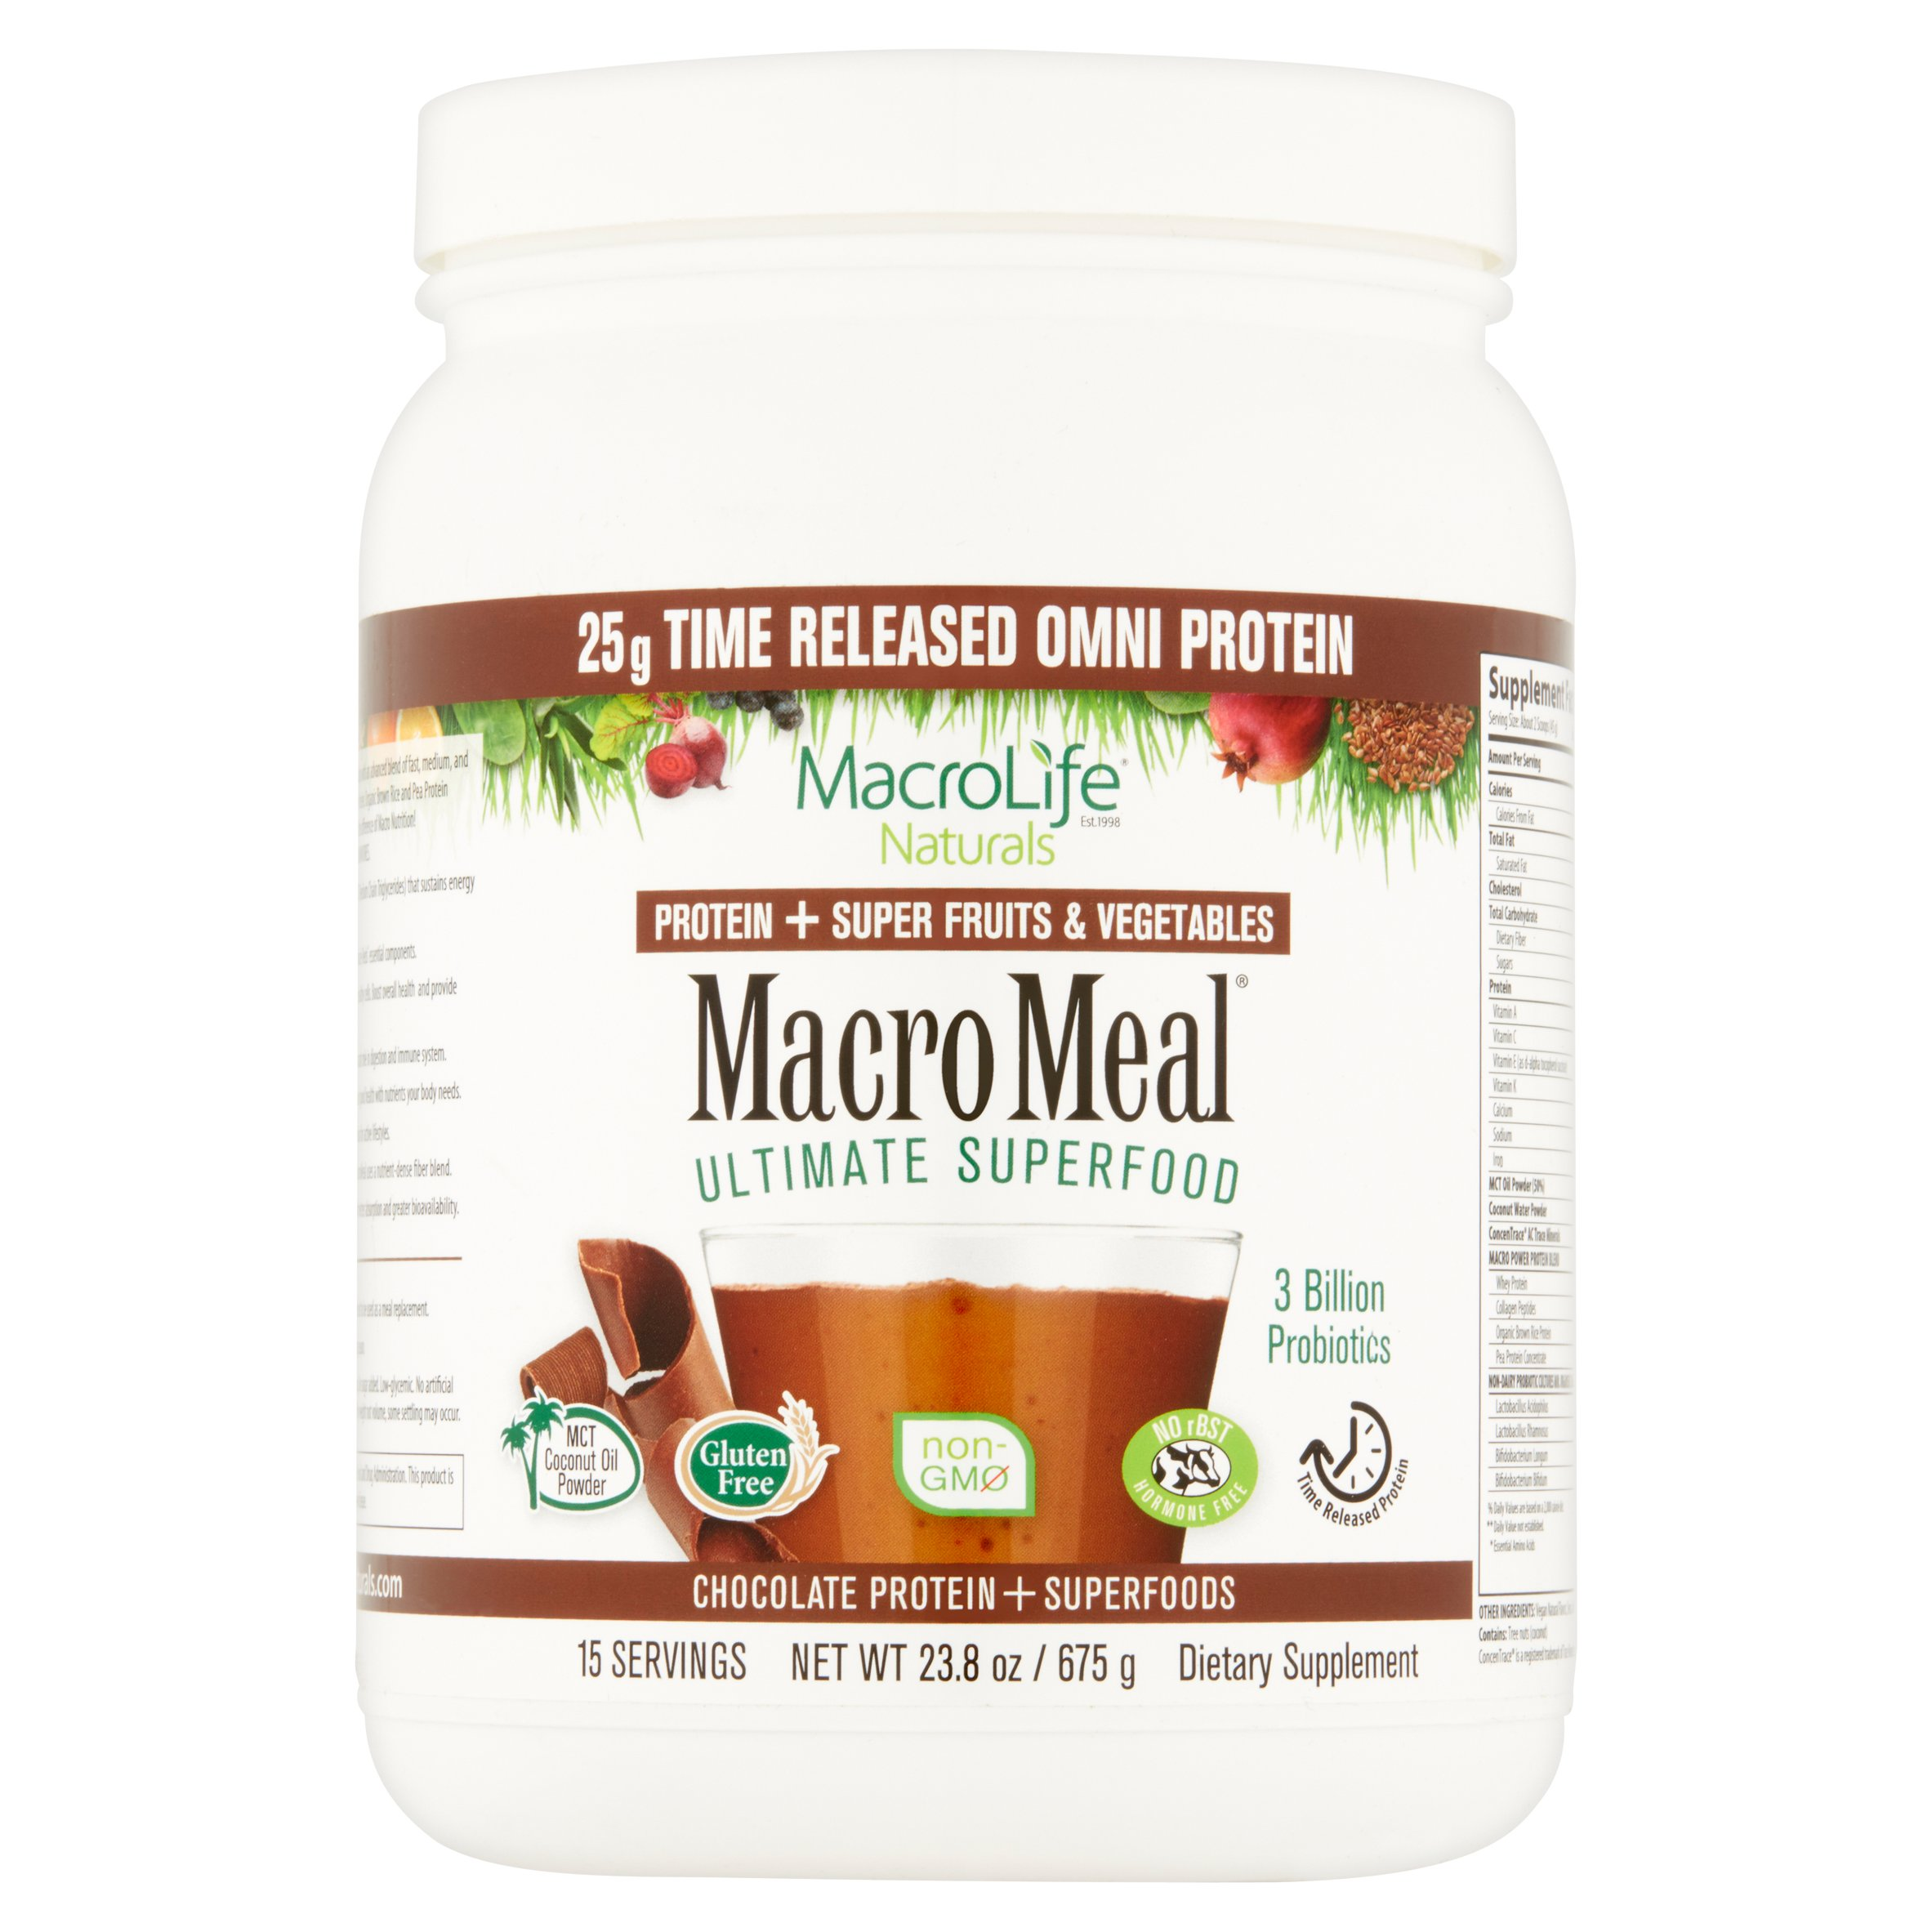 MacroLife Naturals MacroMeal Protein & Superfoods, Chocolate, 1.5 Lb